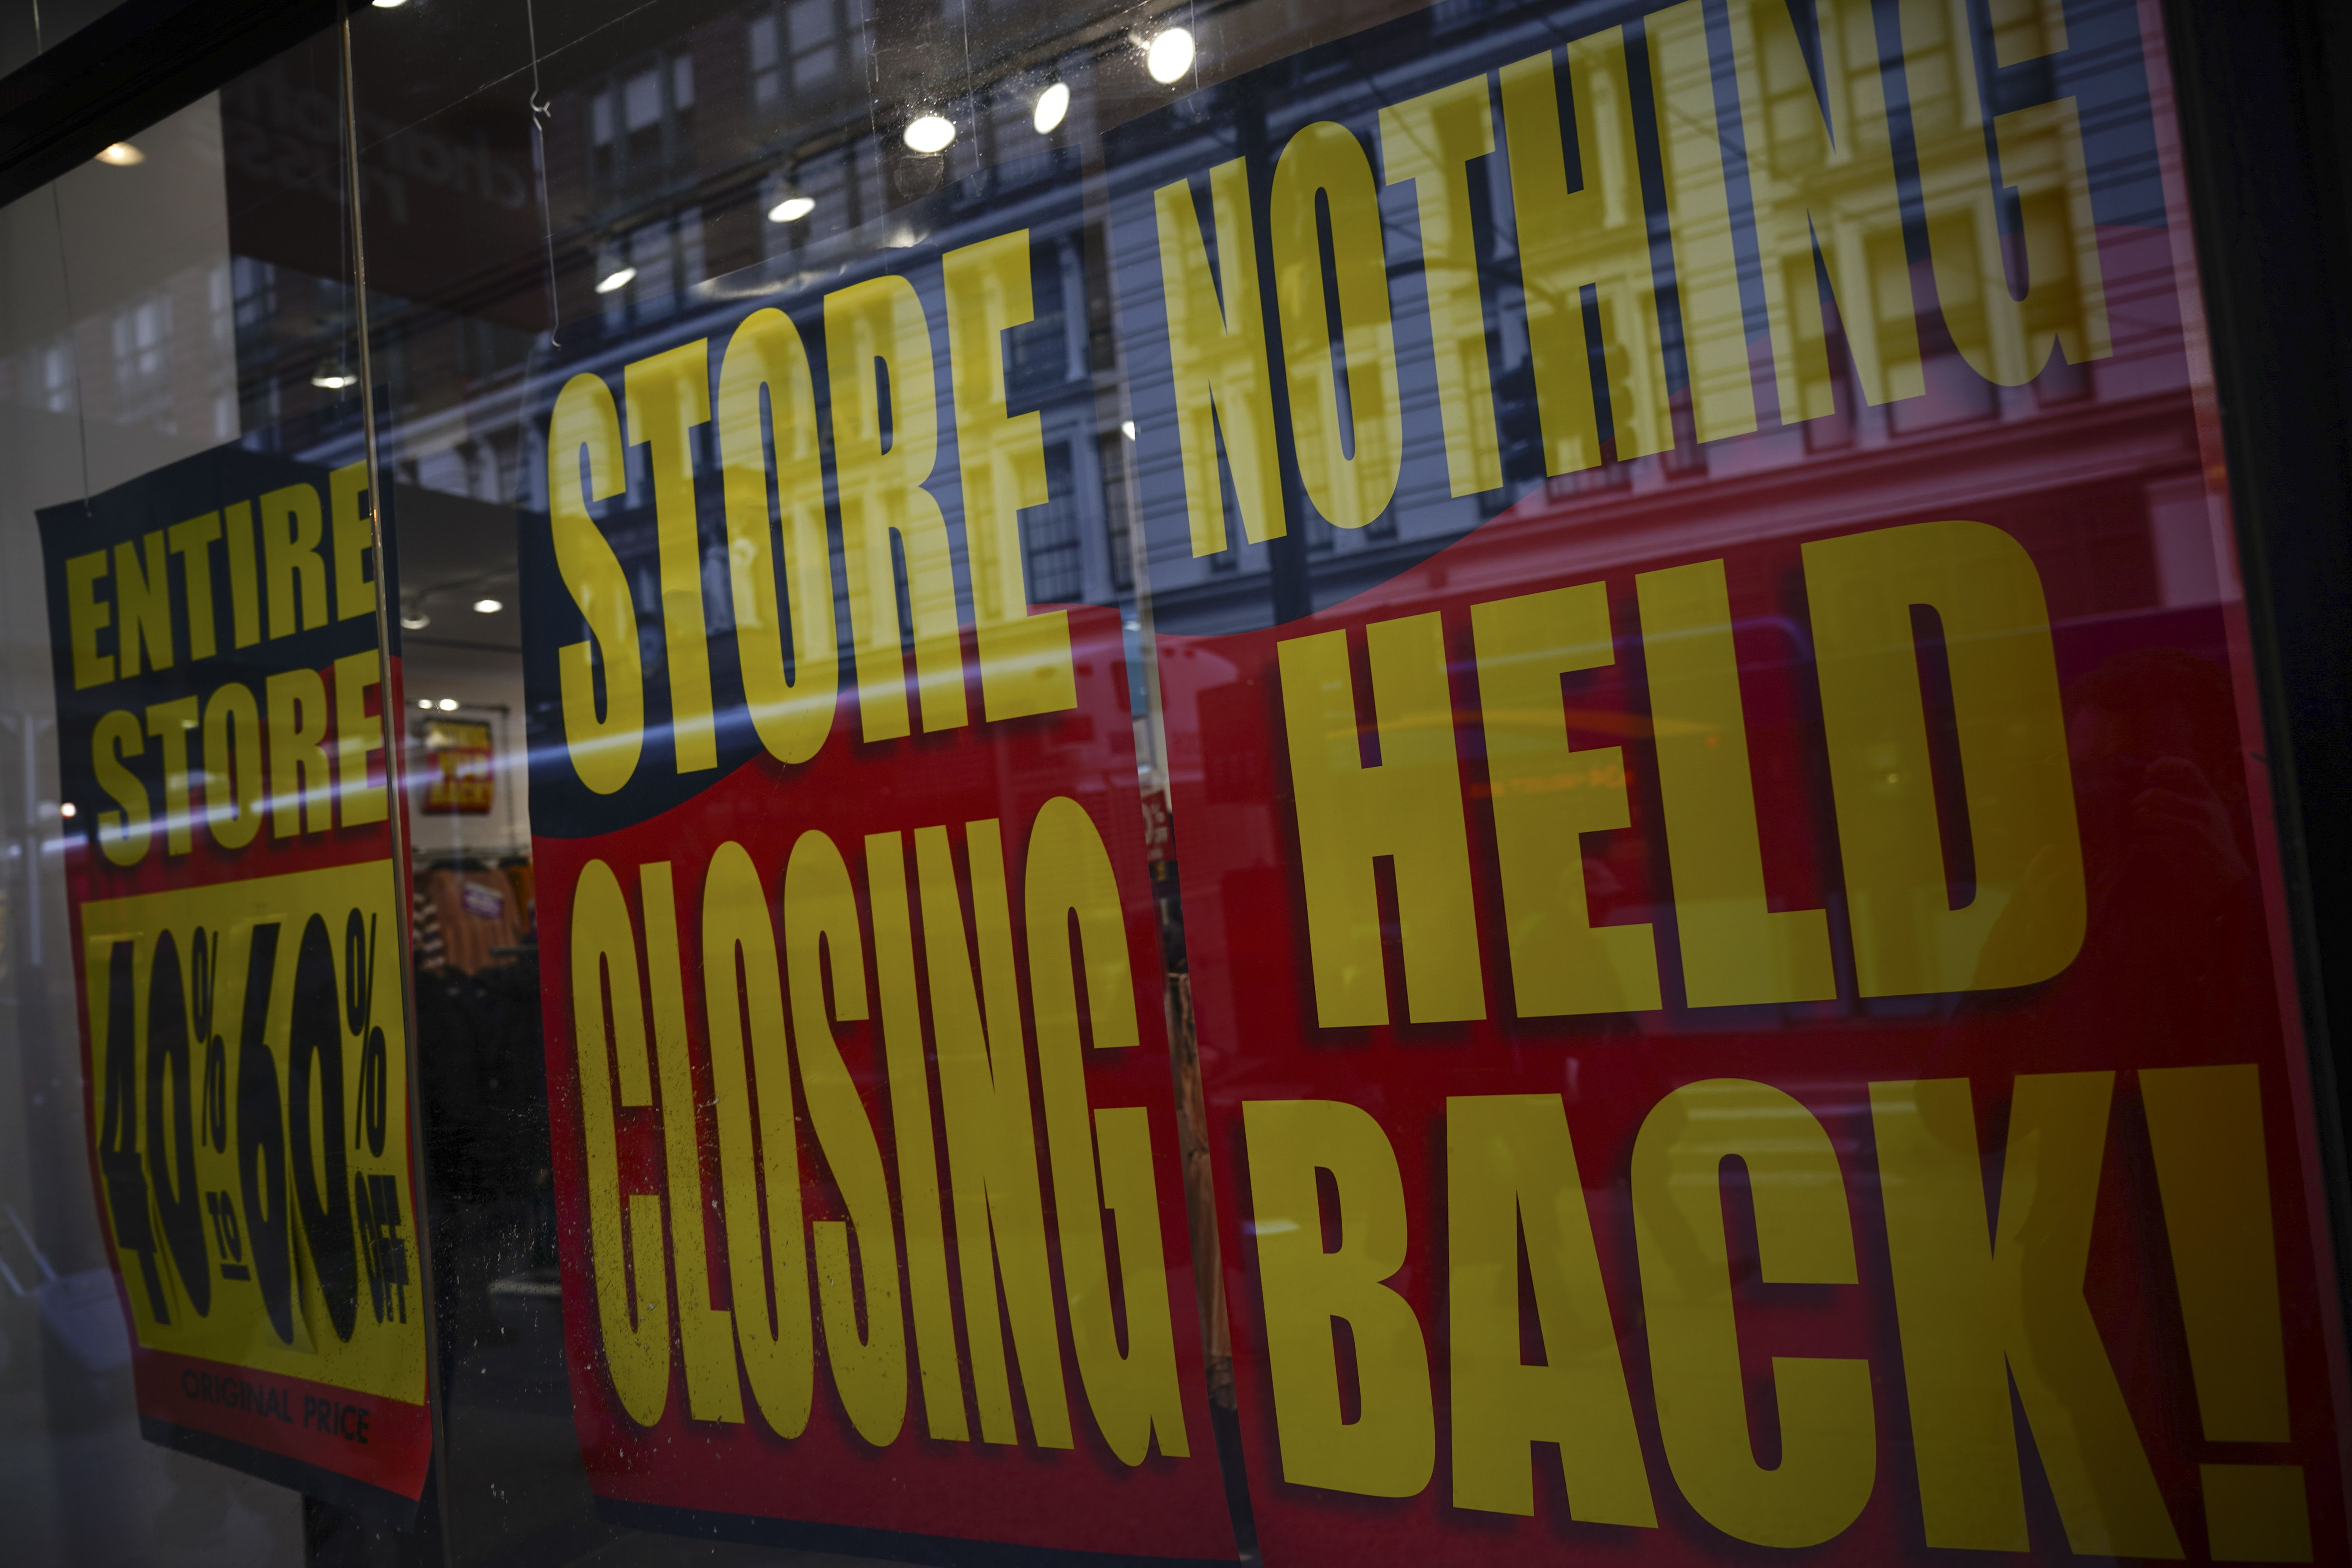 Here's a running list of retail store closures announced in 2019